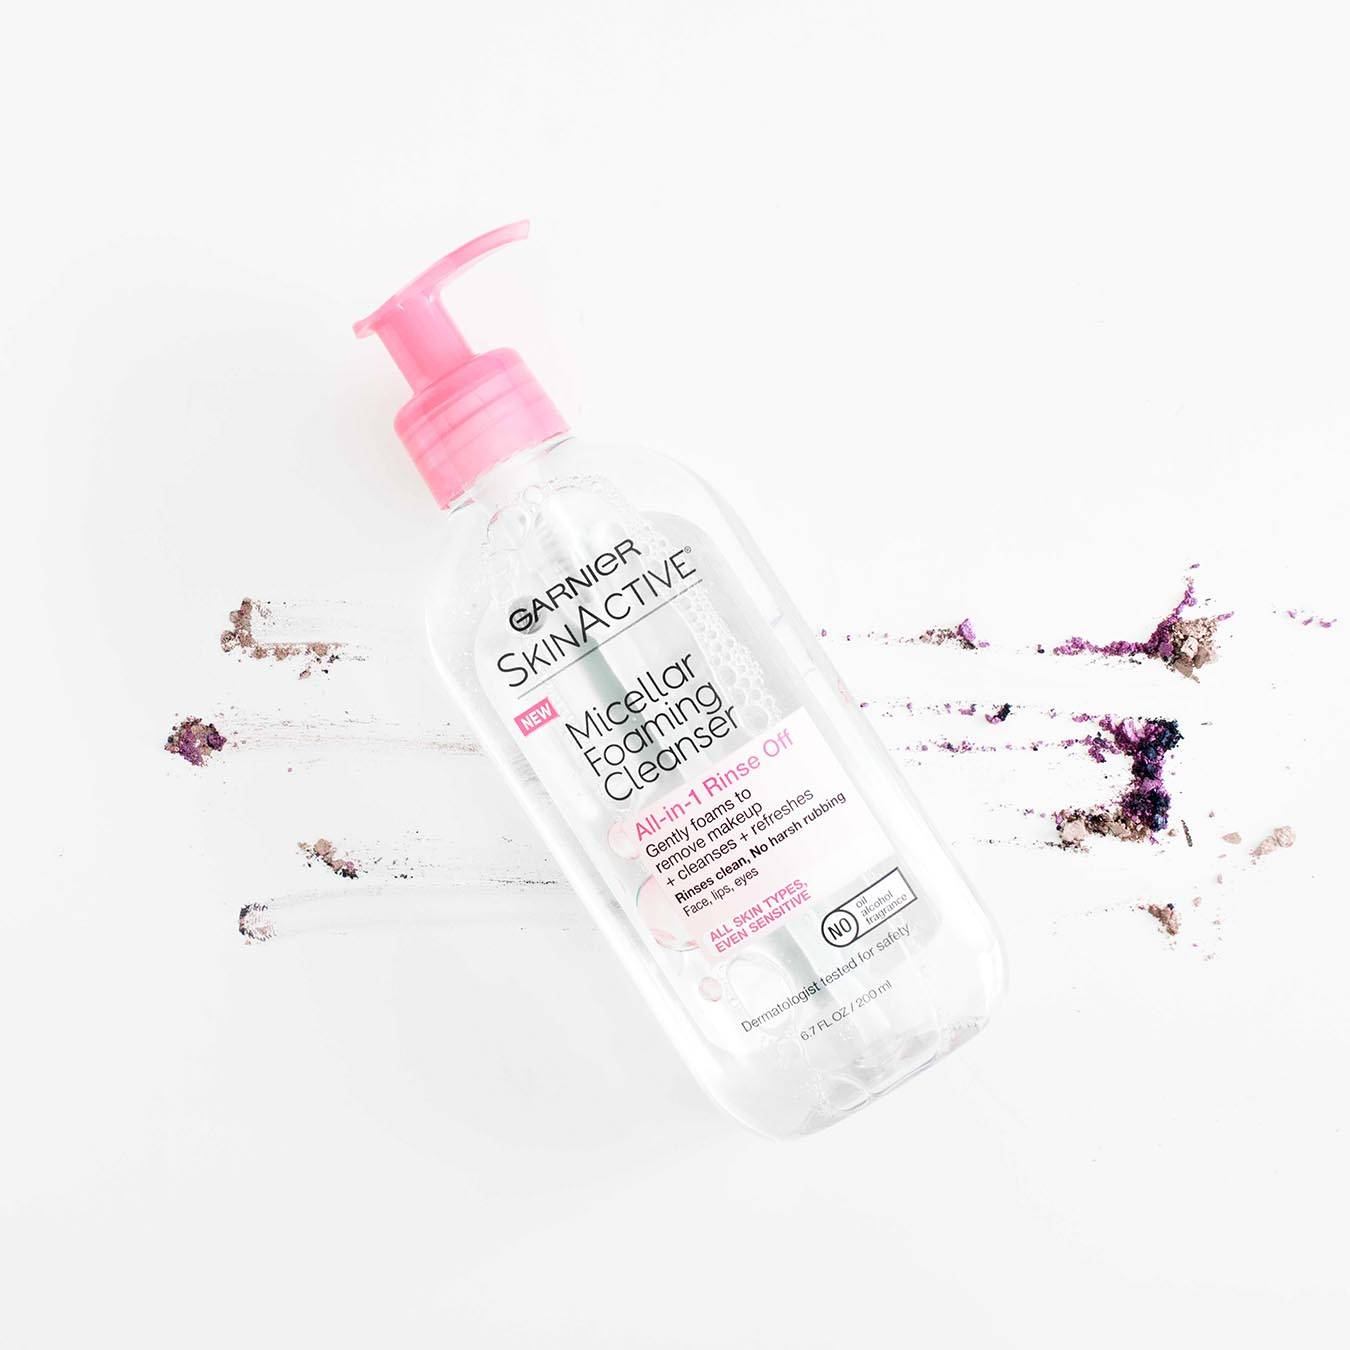 Garnier SkinActive Micellar Foaming Cleanser All-in-1 Rinse Off with pink pump on a white background smudged with tan and purple blush.